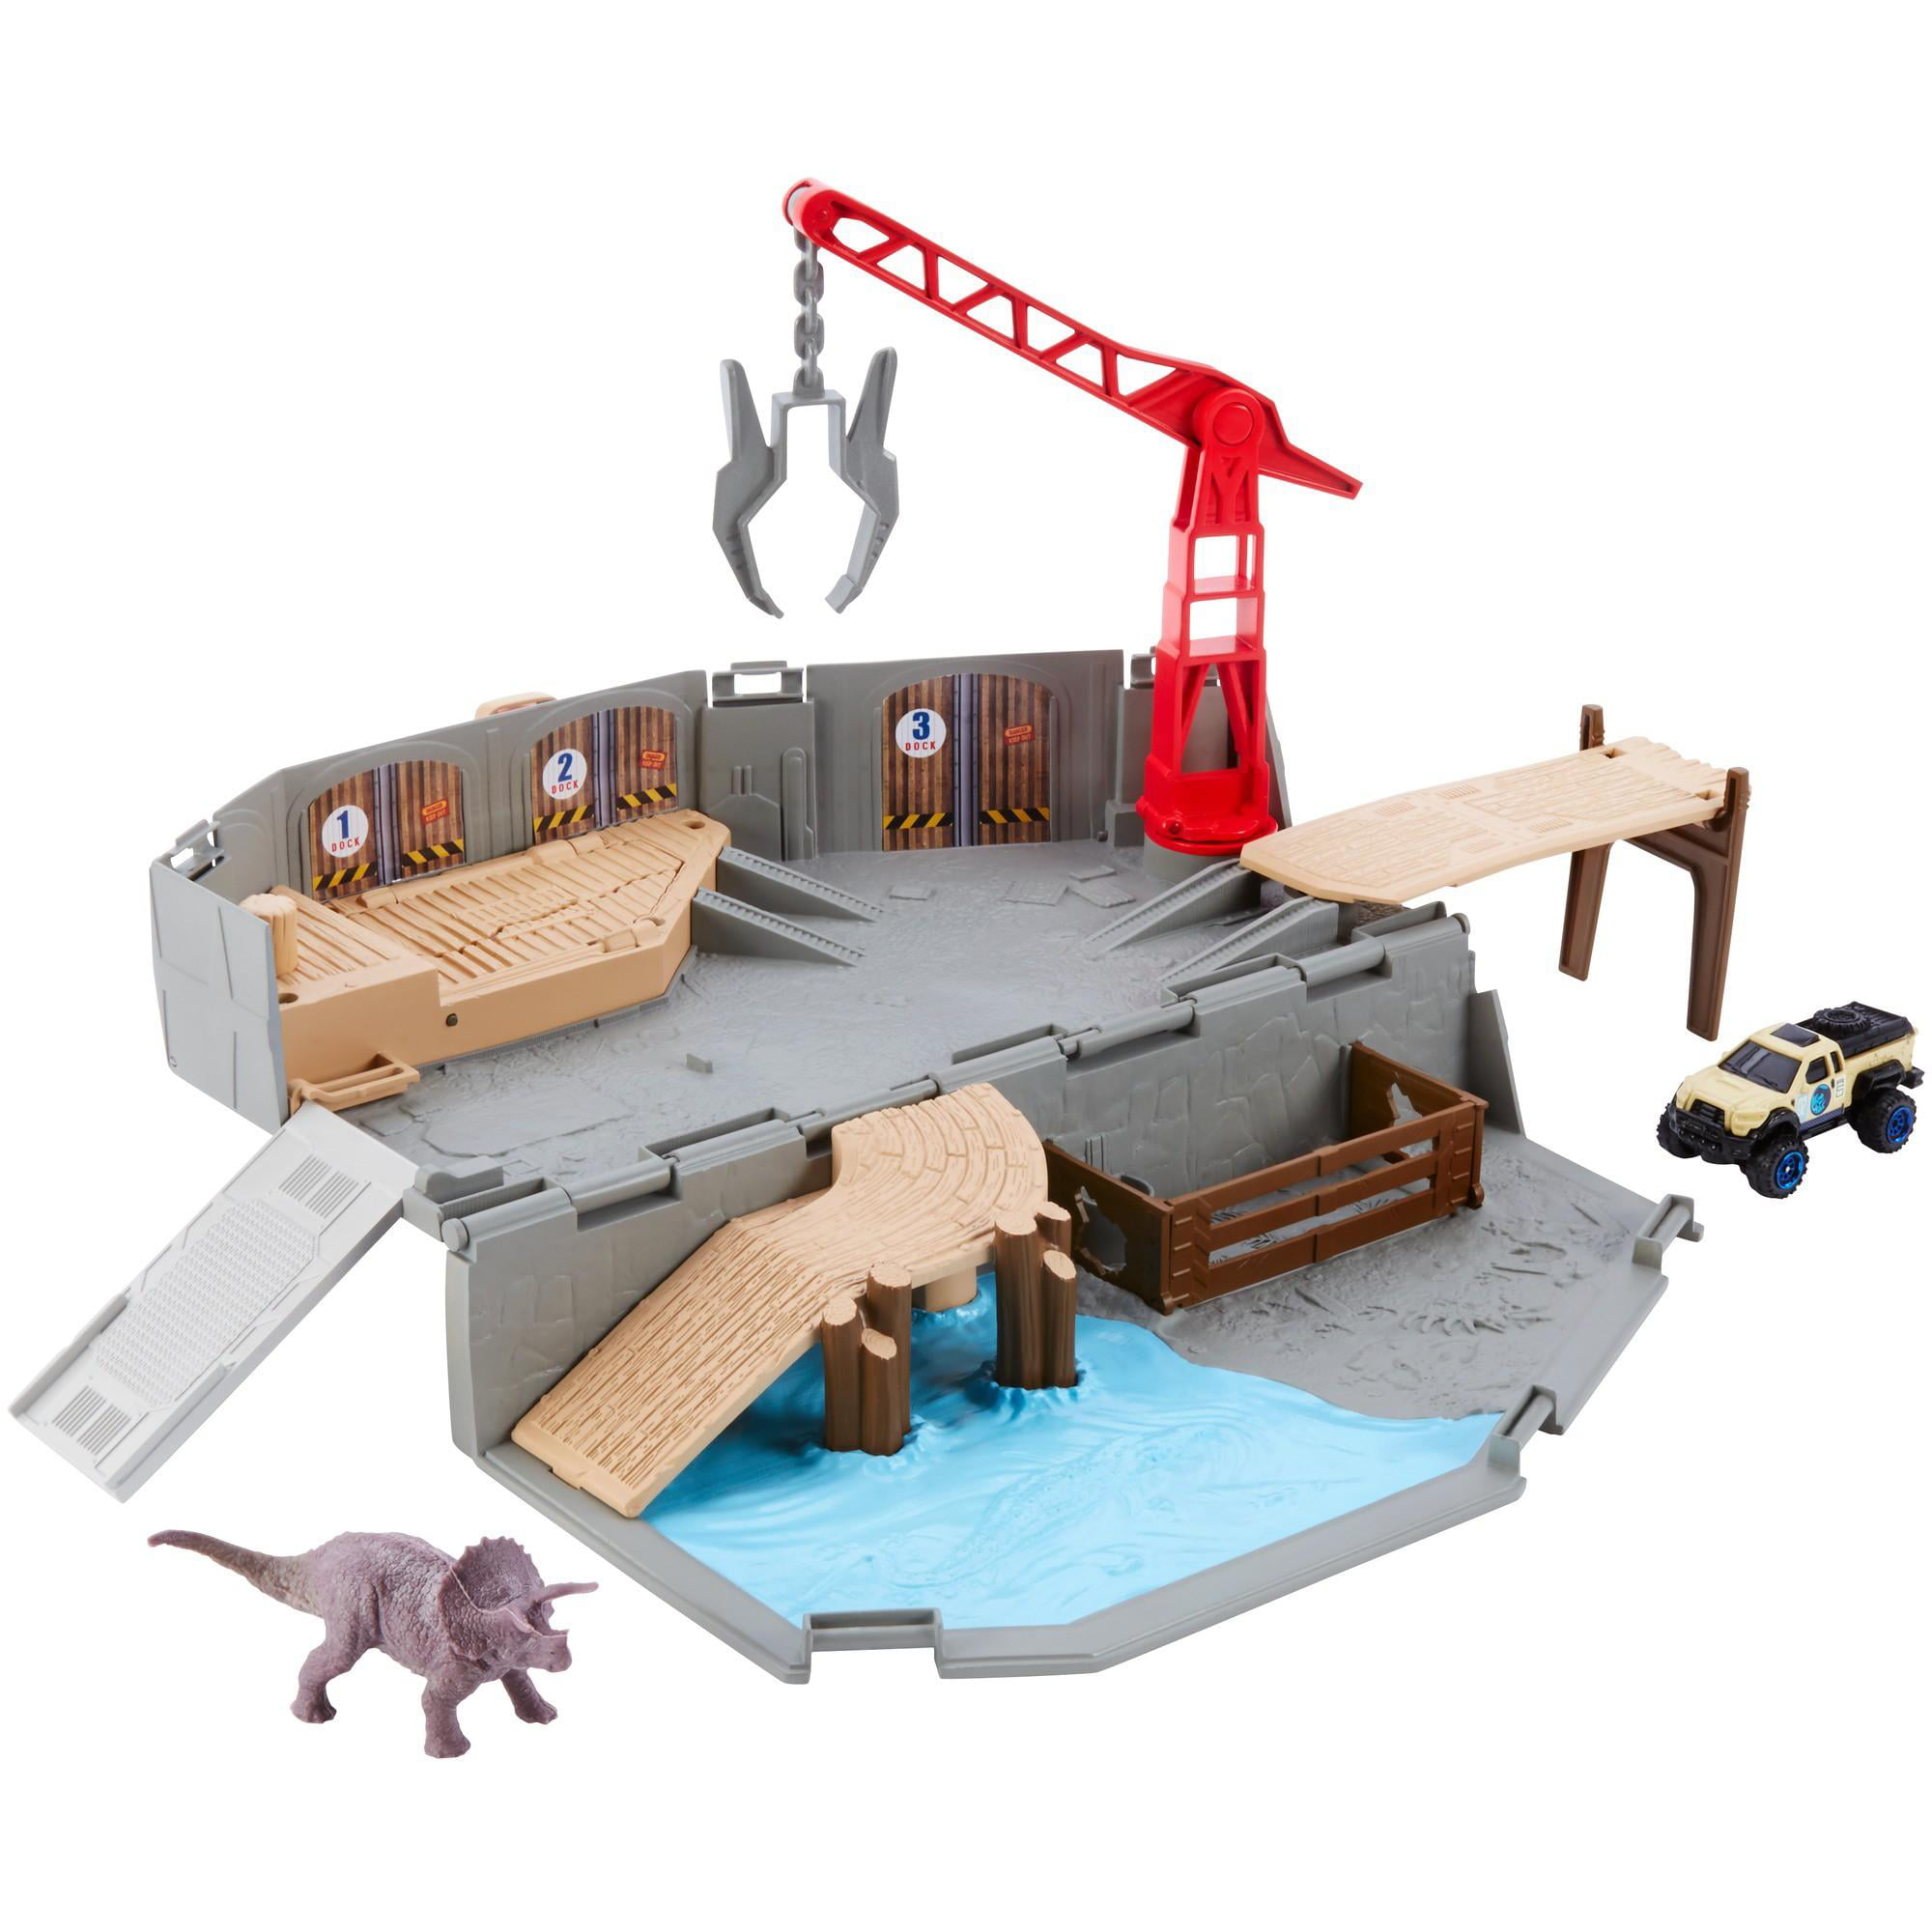 Matchbox Jurassic World Portable Harbor Rescue Playset by Mattel